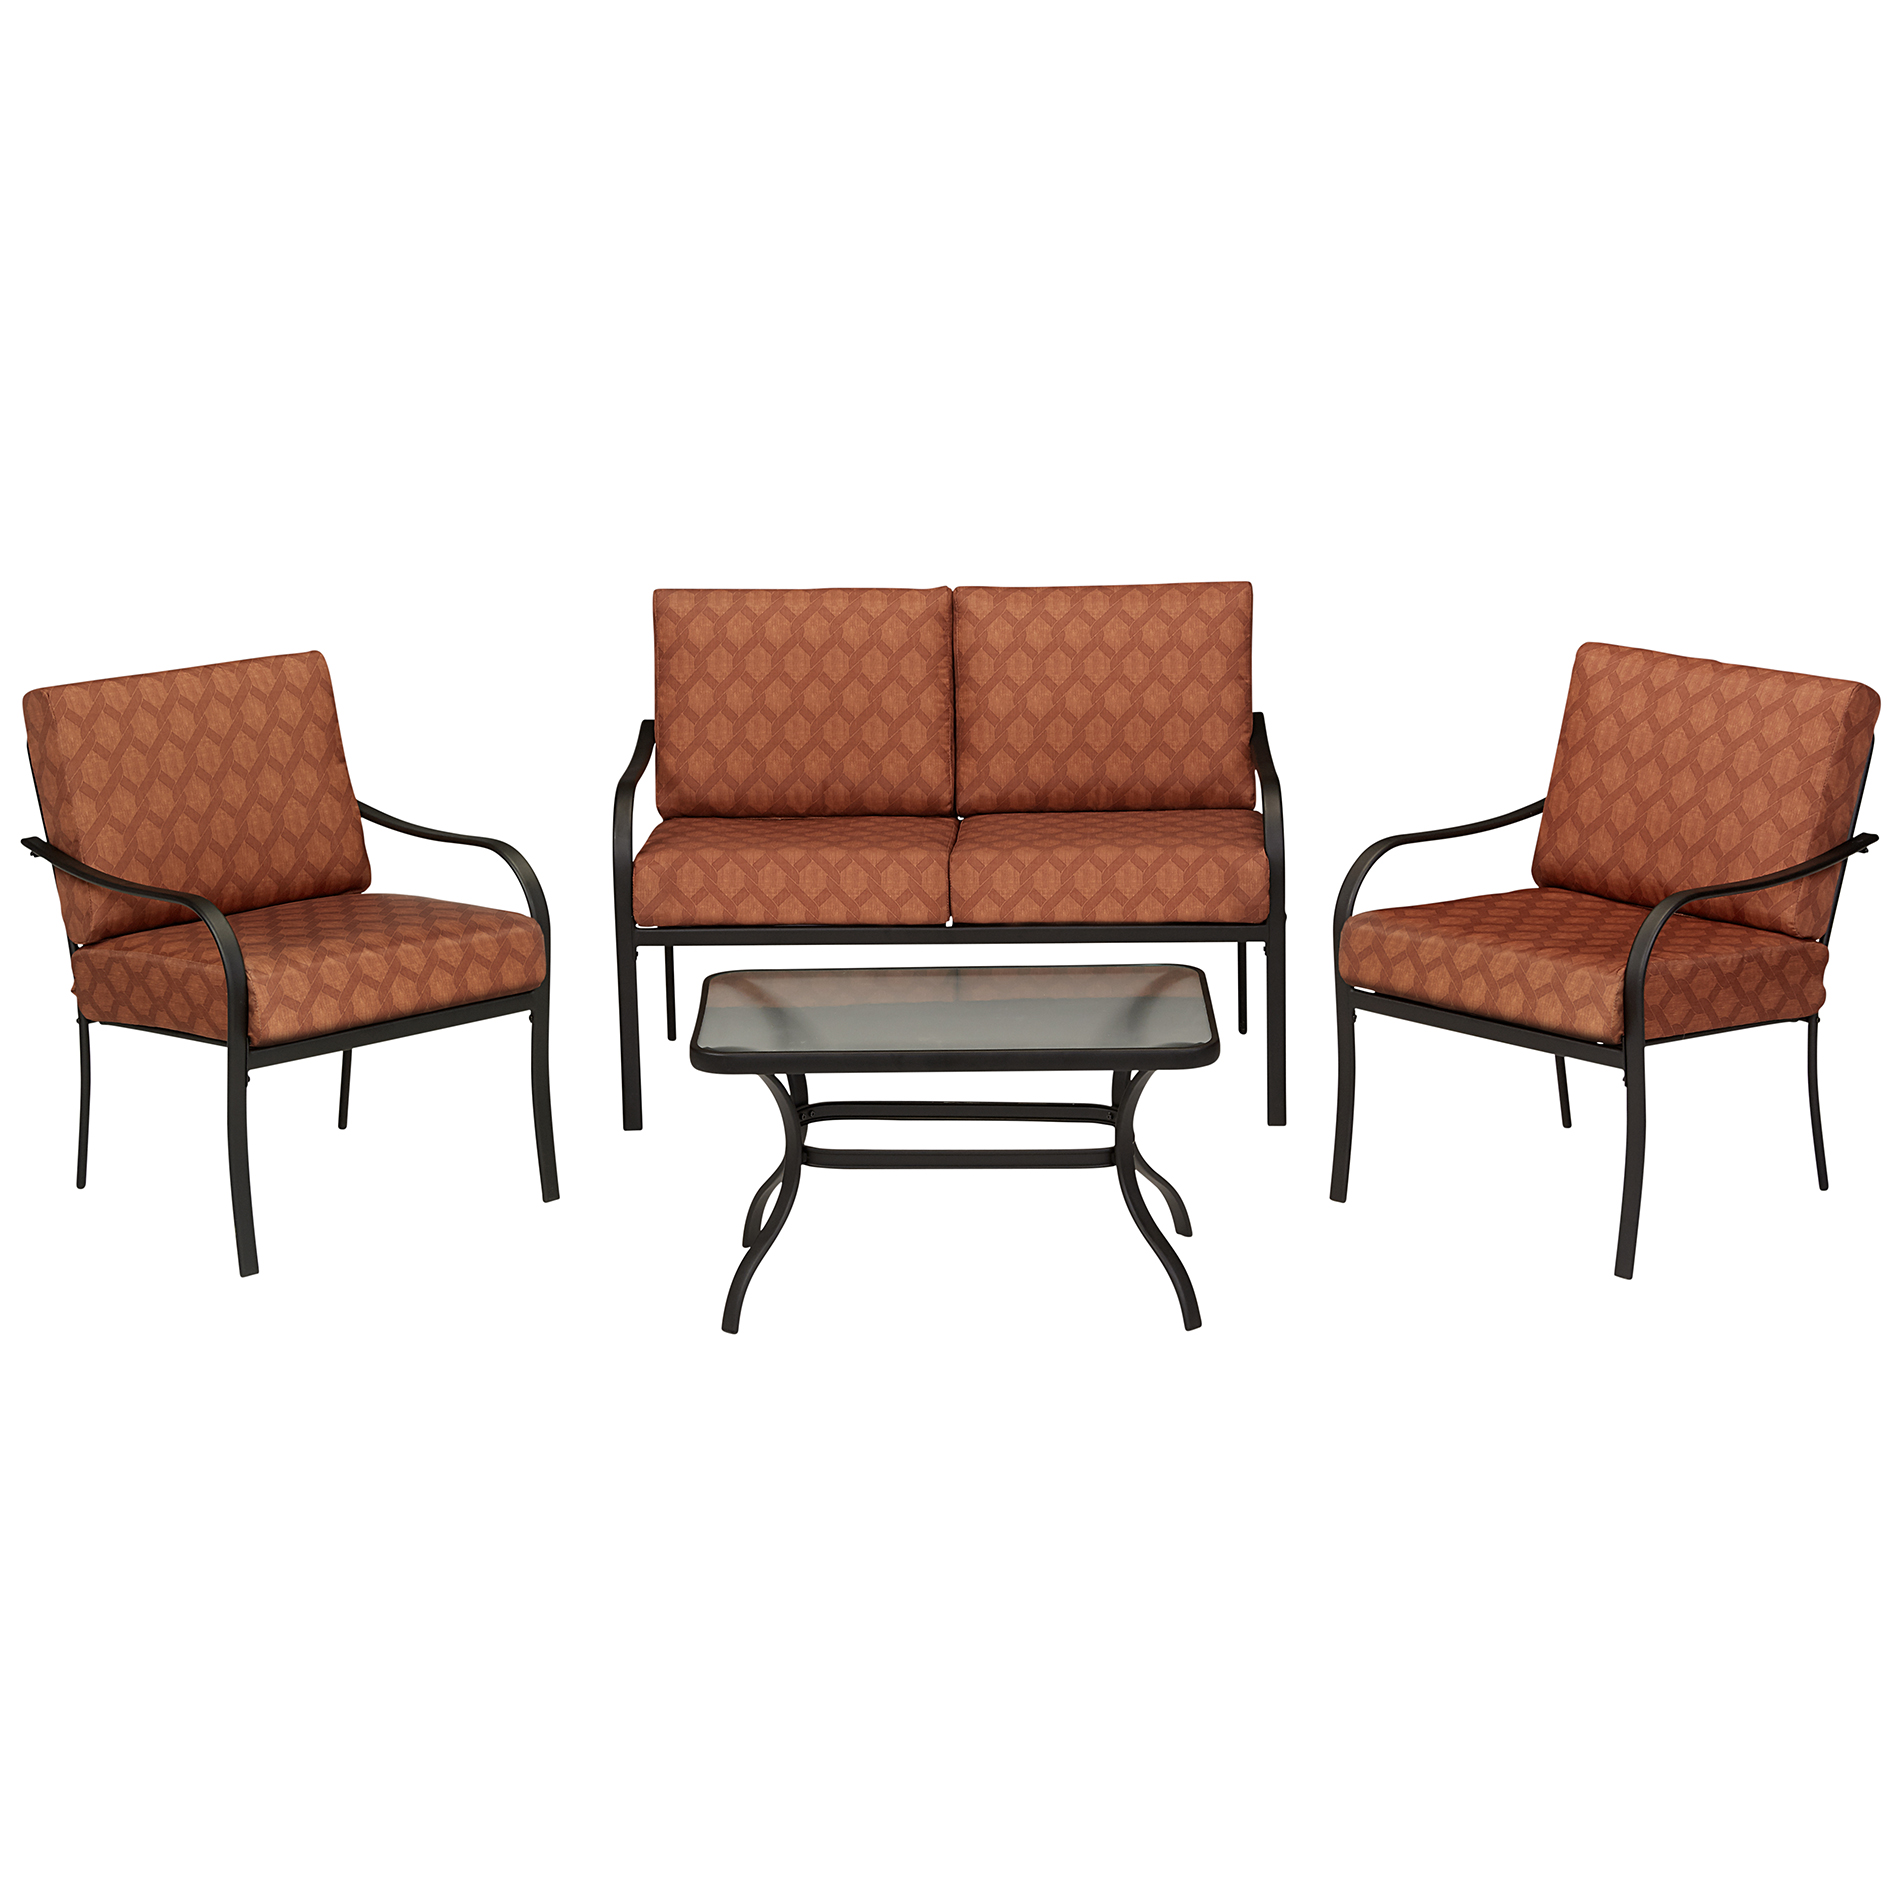 Bailey 4 Piece Seating Set - Terracotta - Outdoor Living ... on Casual Living Patio id=53670